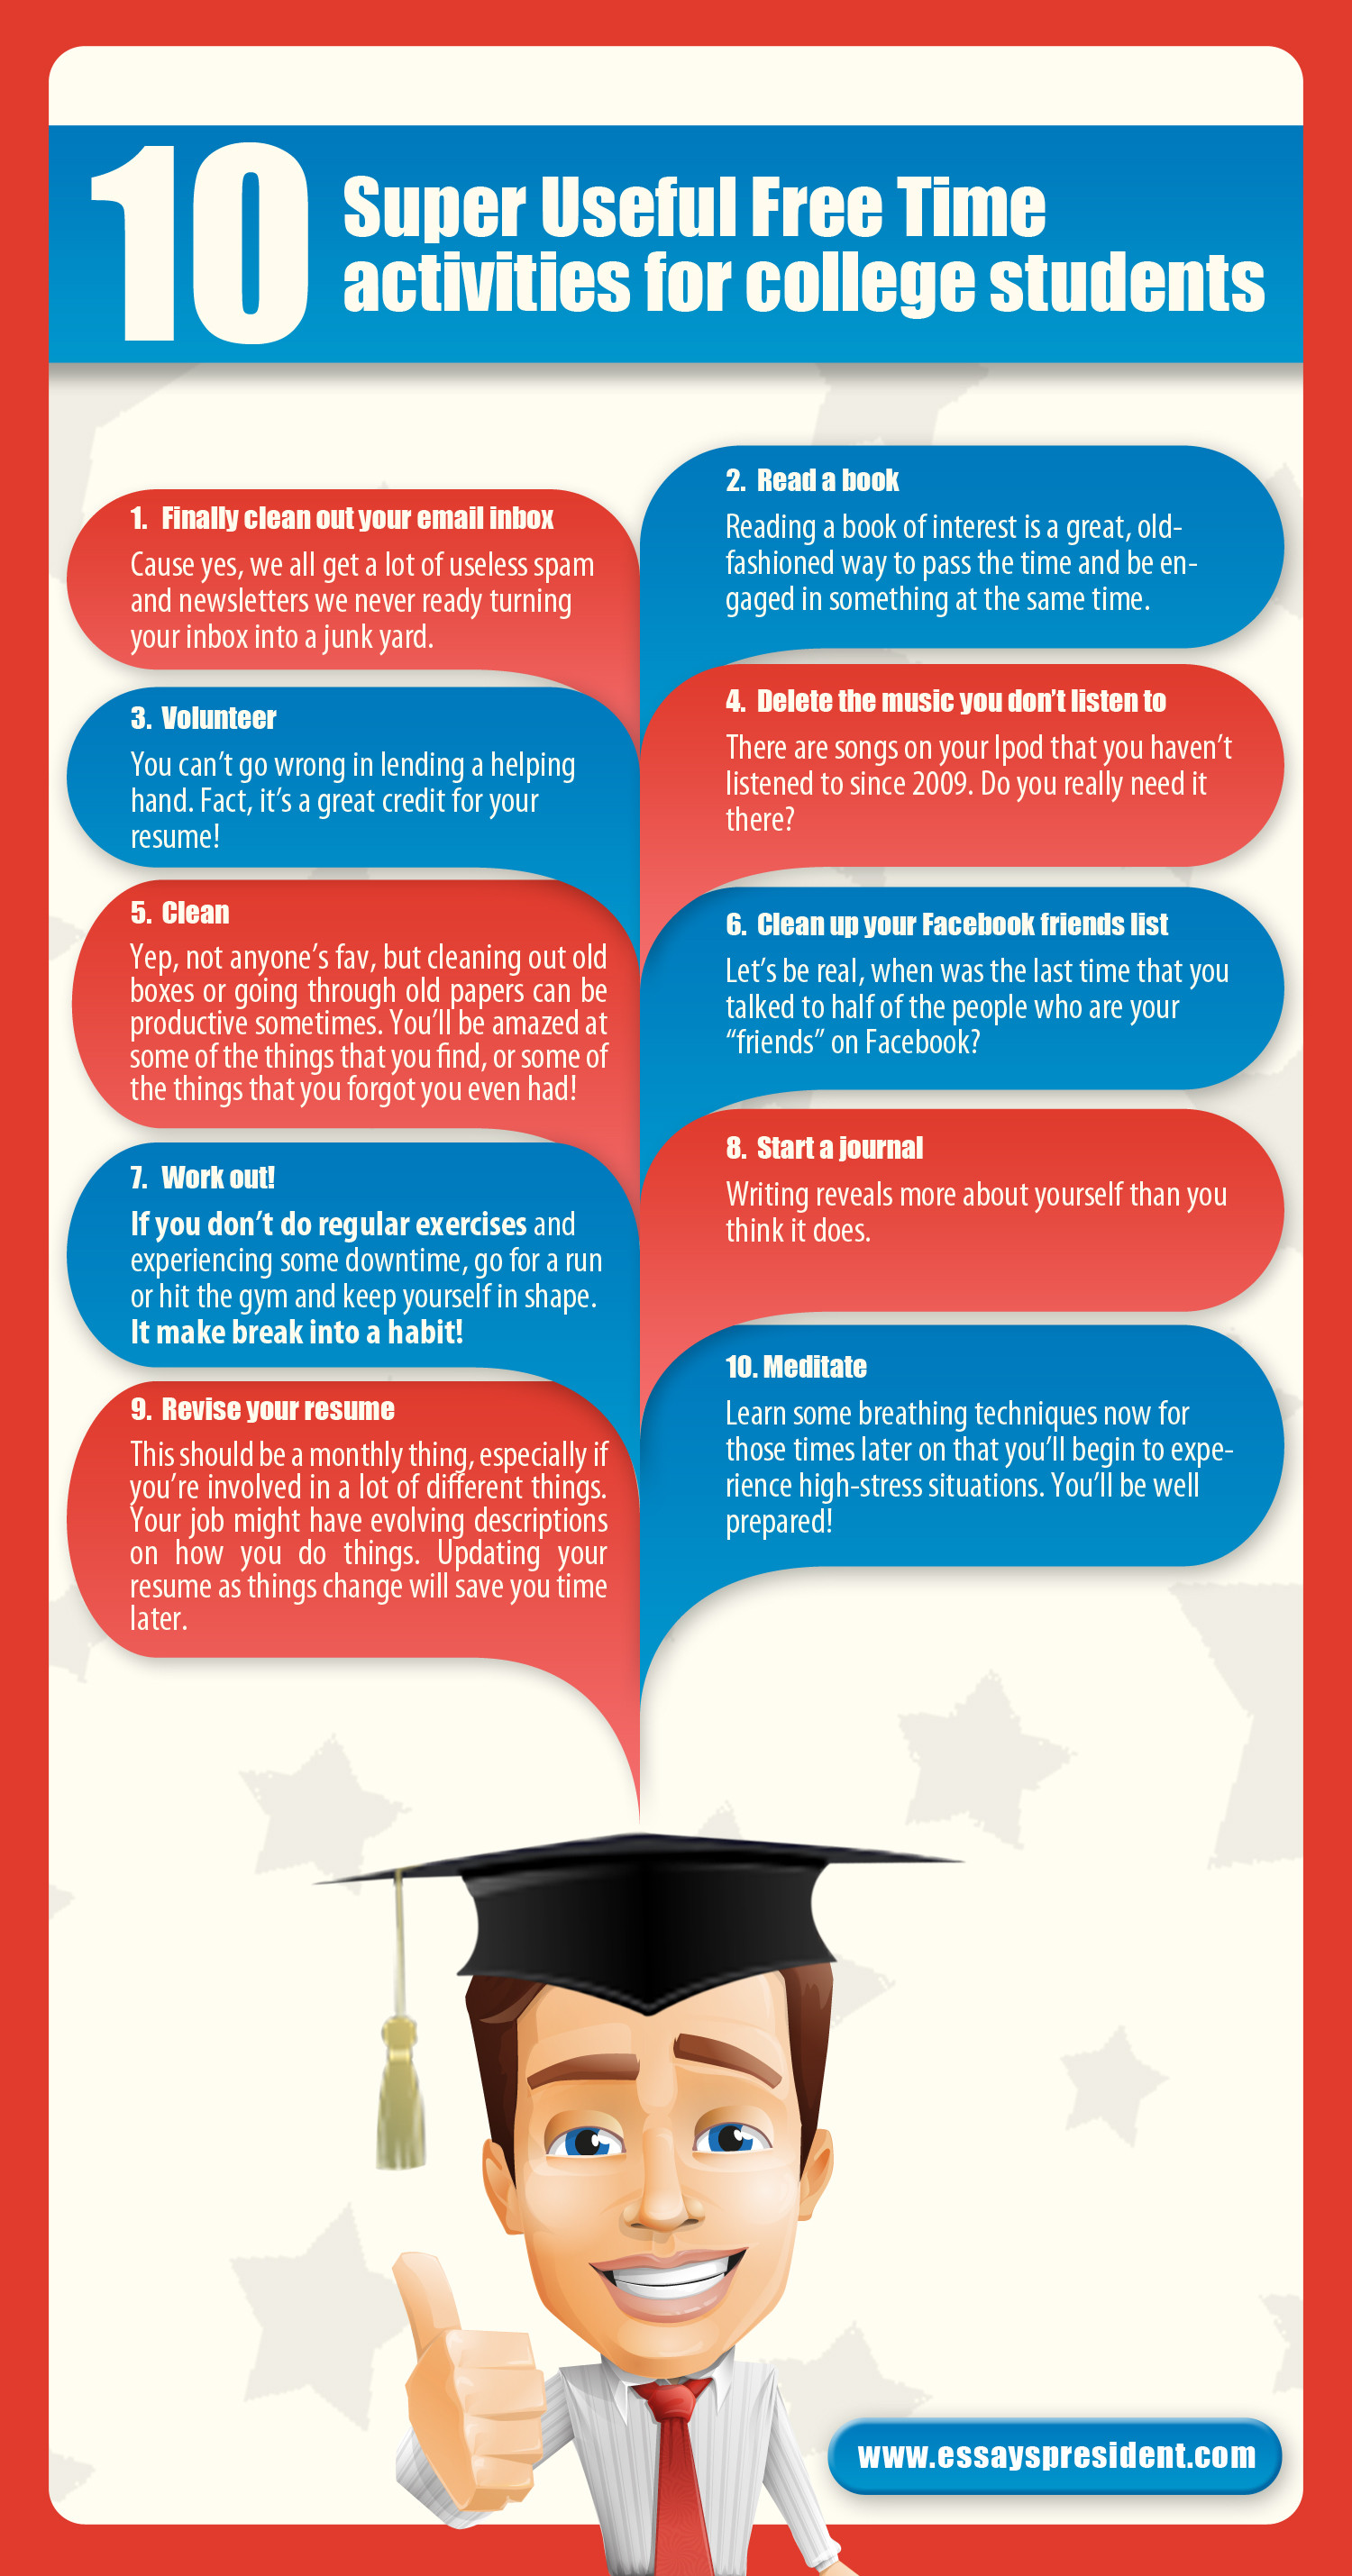 10 Super Useful Free Time activities for college students